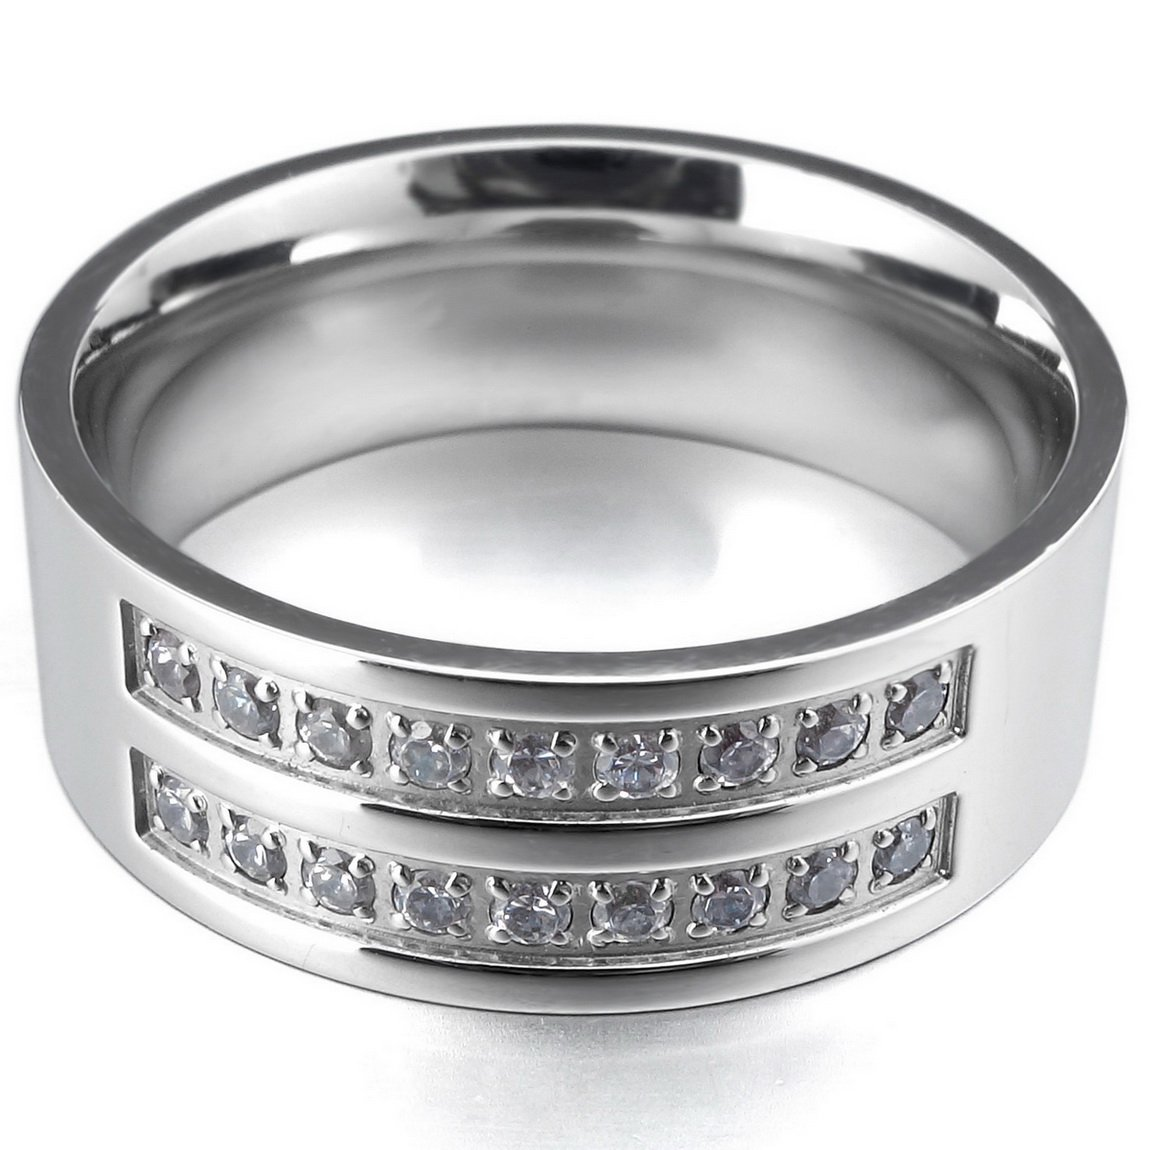 INBLUE Men's 8mm Stainless Steel Ring CZ Silver Tone Comfort Fit Band Wedding Size12 by INBLUE (Image #2)